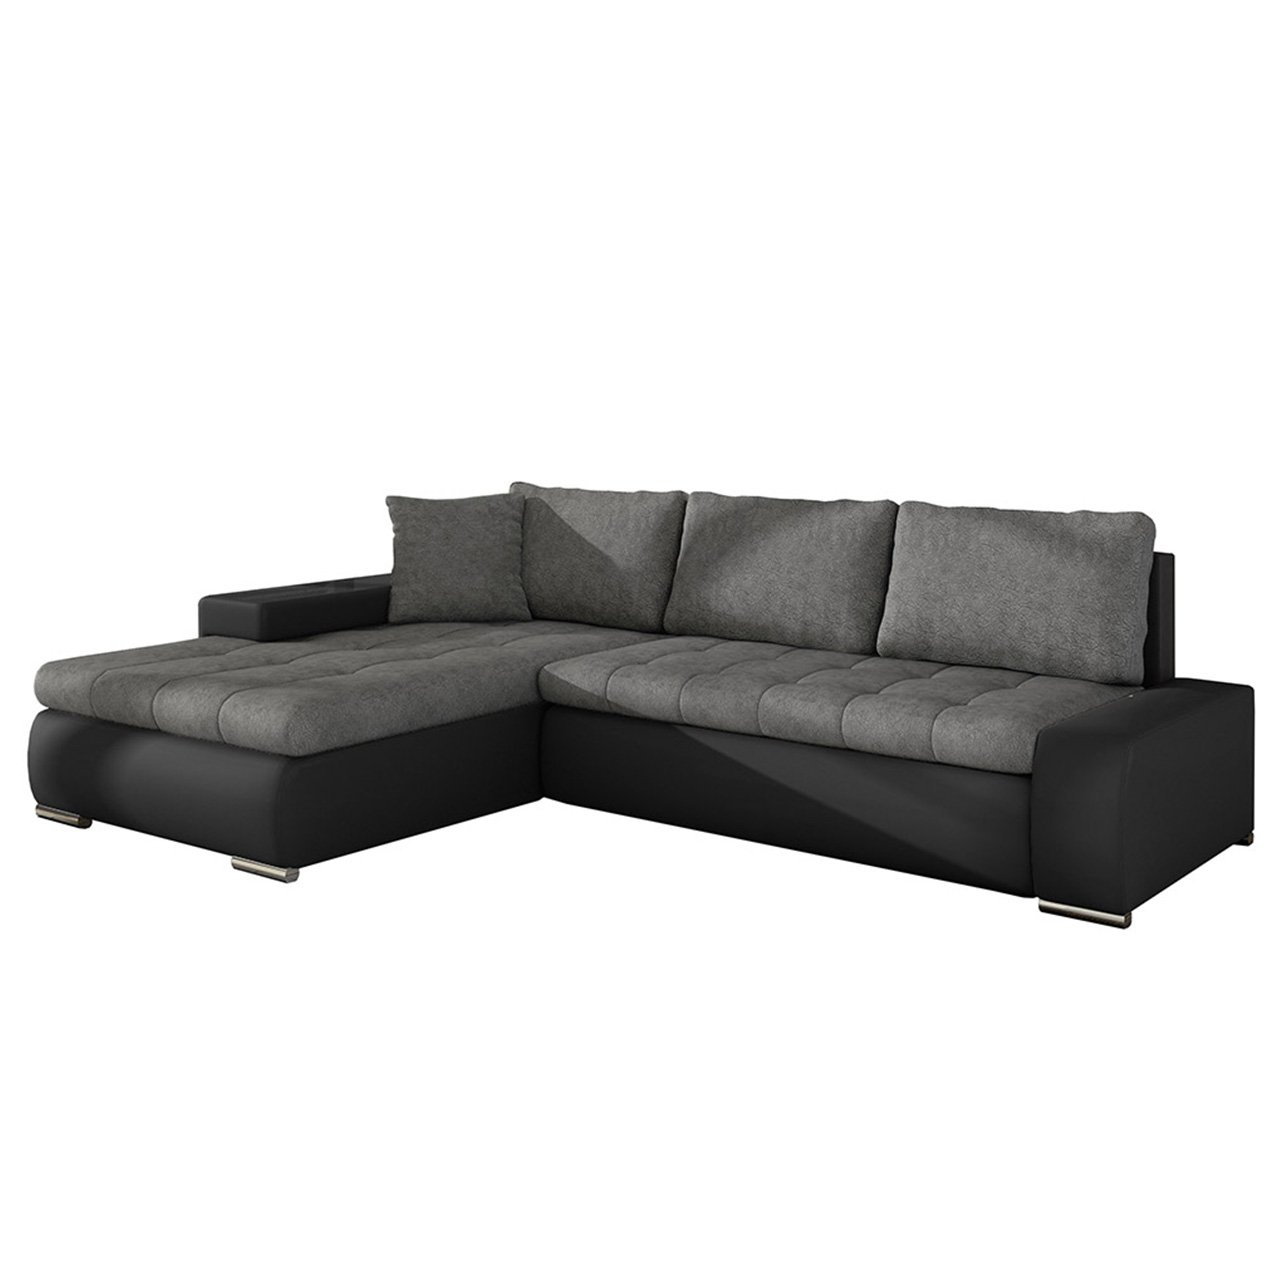 l sofa mit cheap polsterecke wahlweise mit und with l. Black Bedroom Furniture Sets. Home Design Ideas